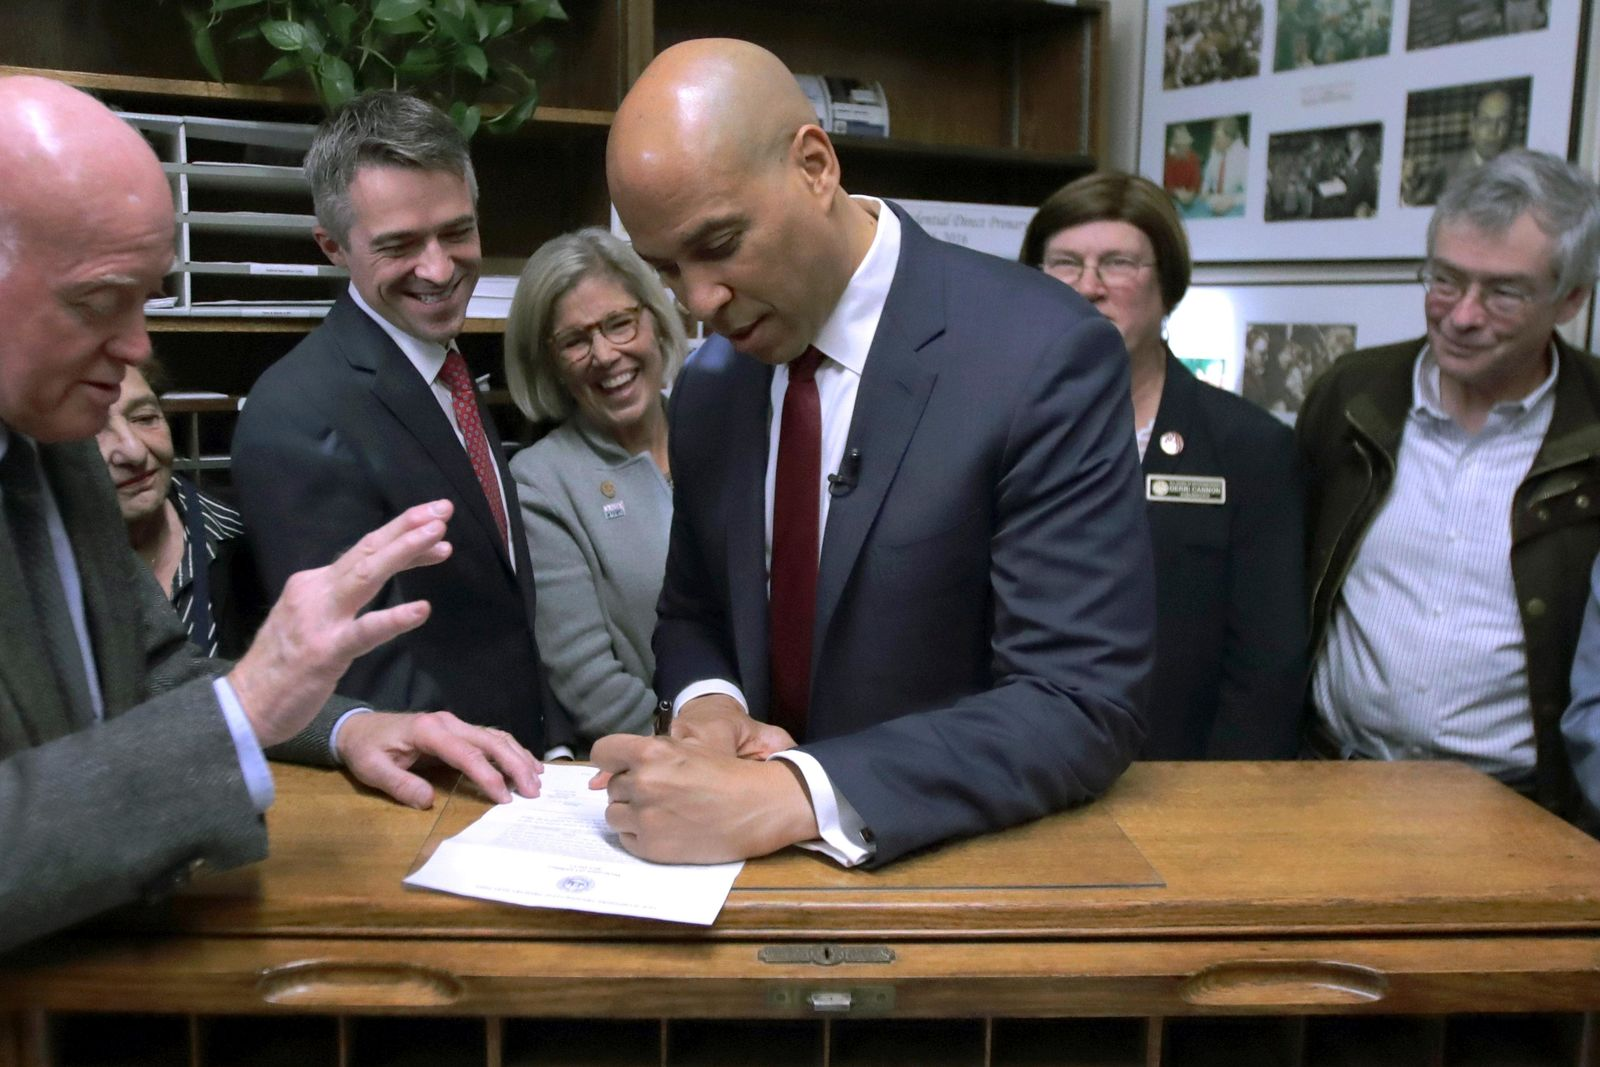 Democratic presidential candidate Sen. Cory Booker, D-N.J., files to have his name listed on the New Hampshire primary ballot, Friday, Nov. 15, 2019, in Concord, N.H. At left is New Hampshire Secretary of State Bill Gardner. (AP Photo/Charles Krupa)